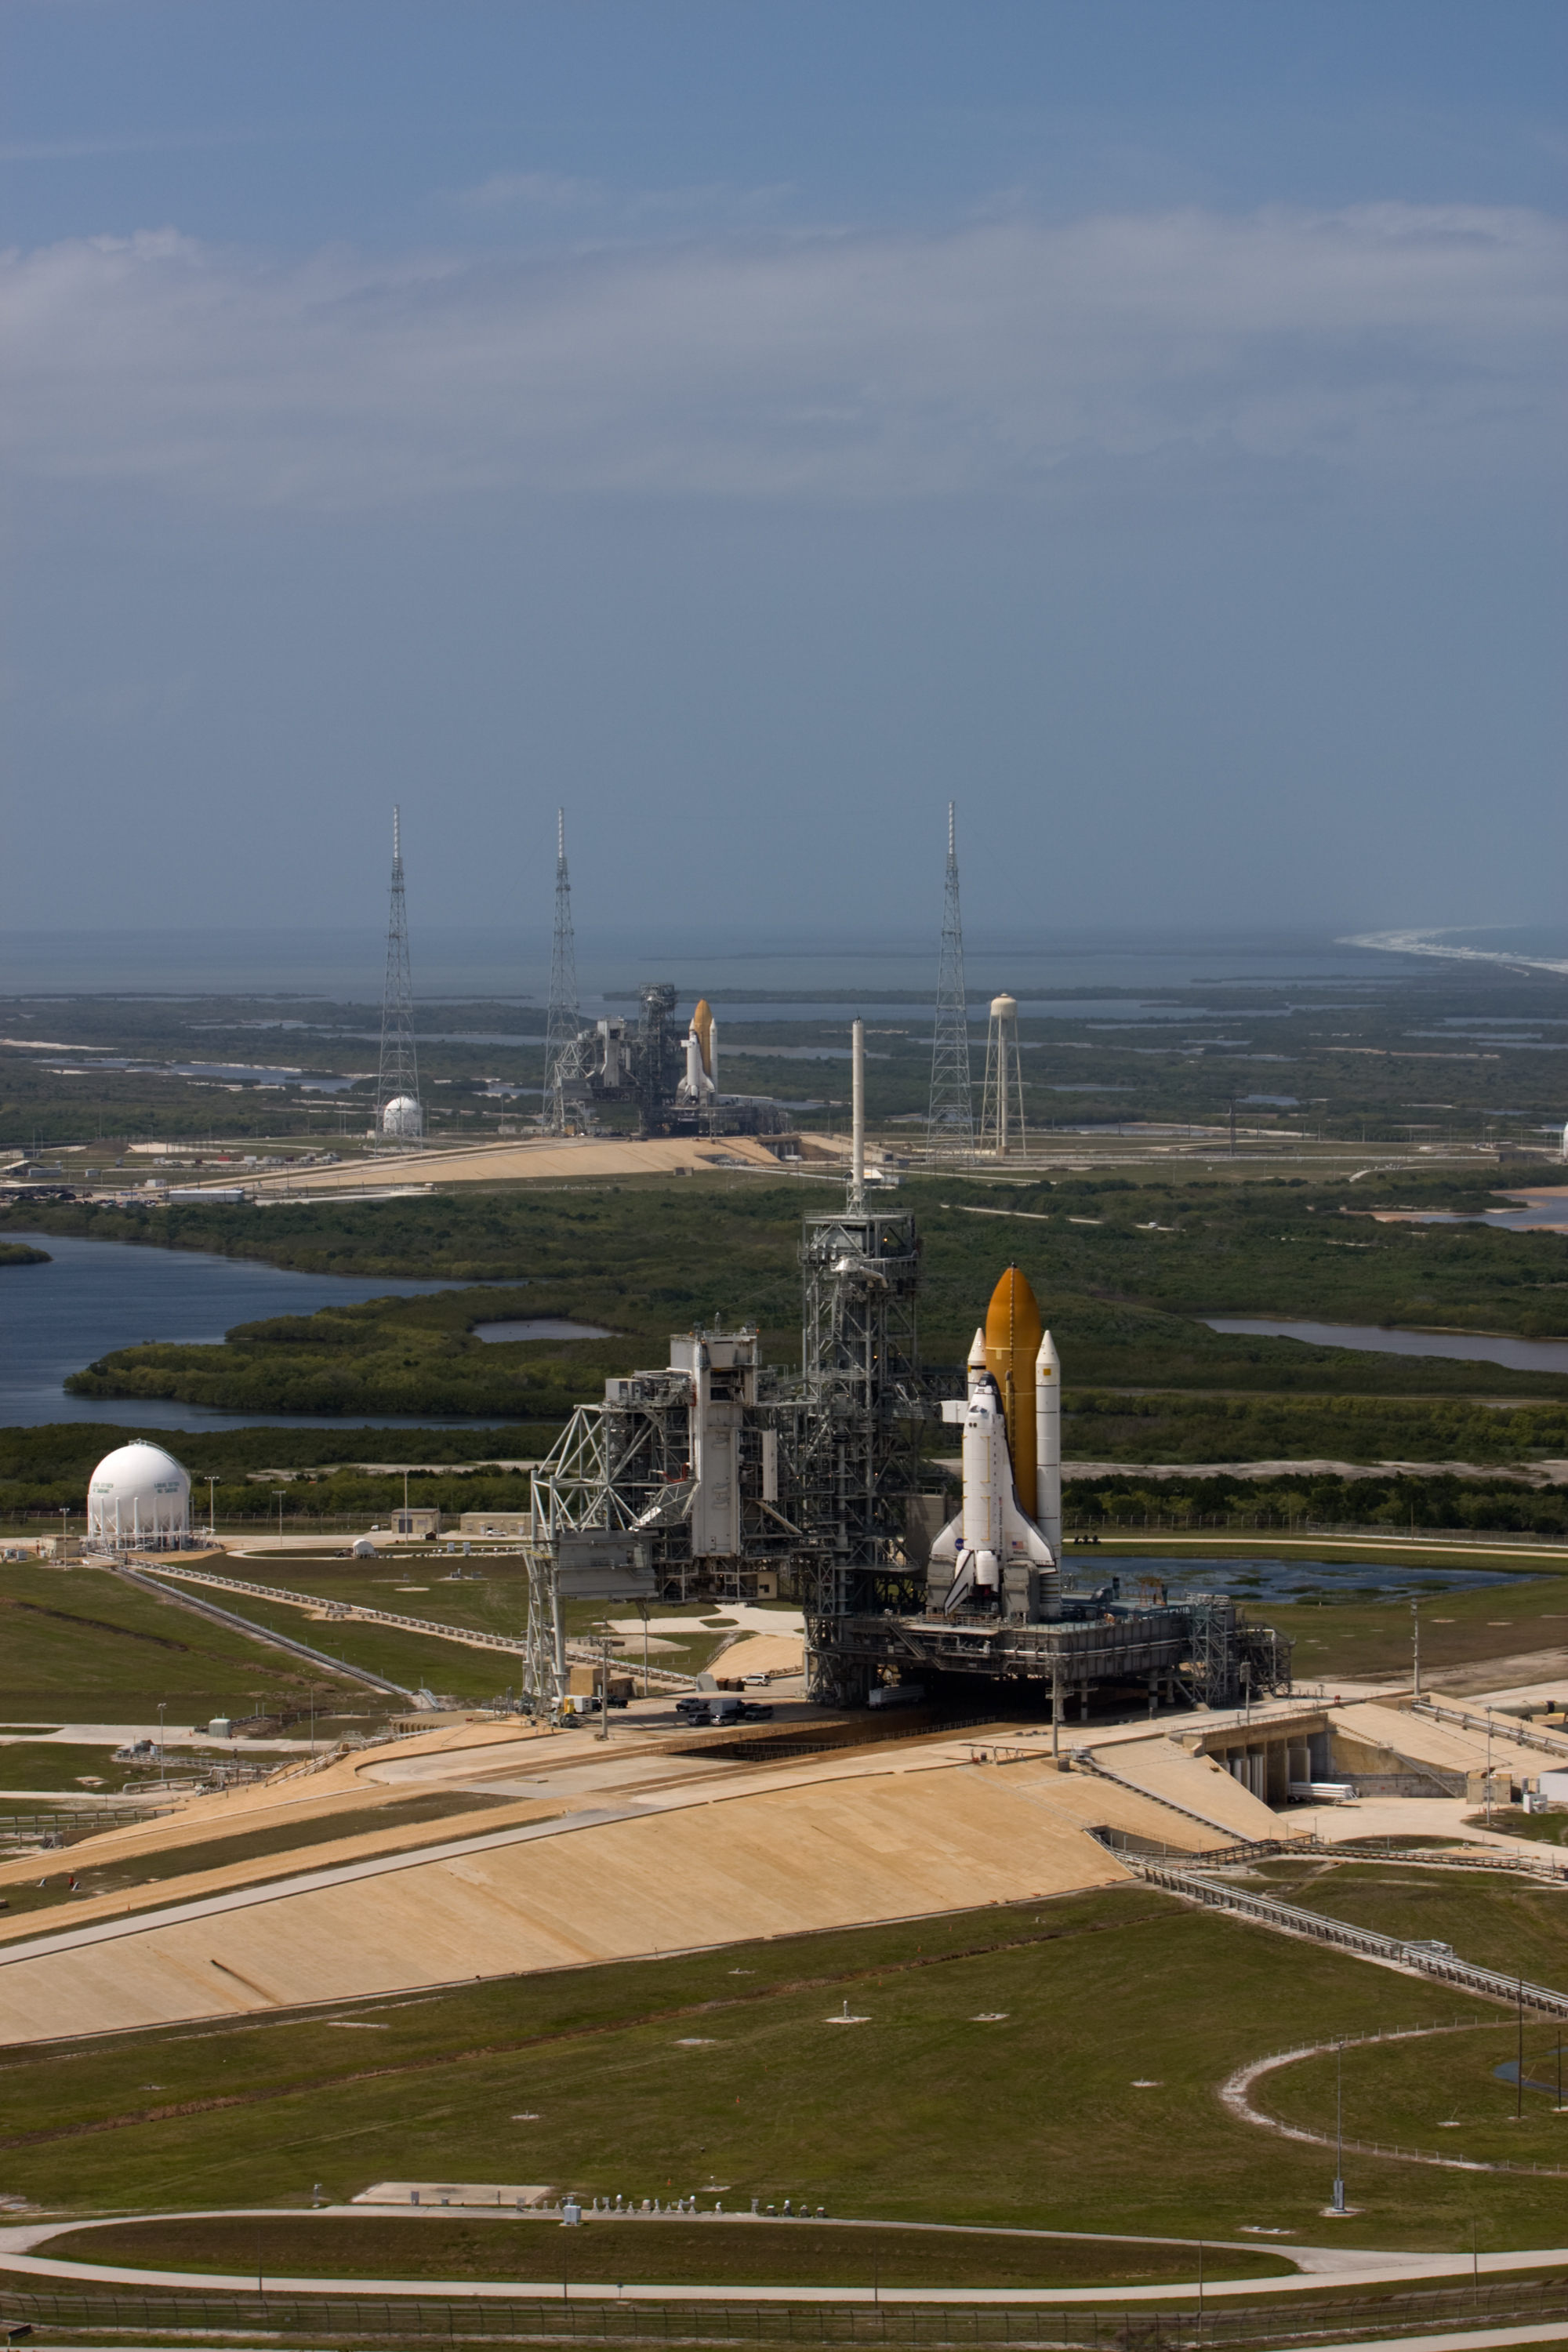 highest space shuttle mission - photo #41